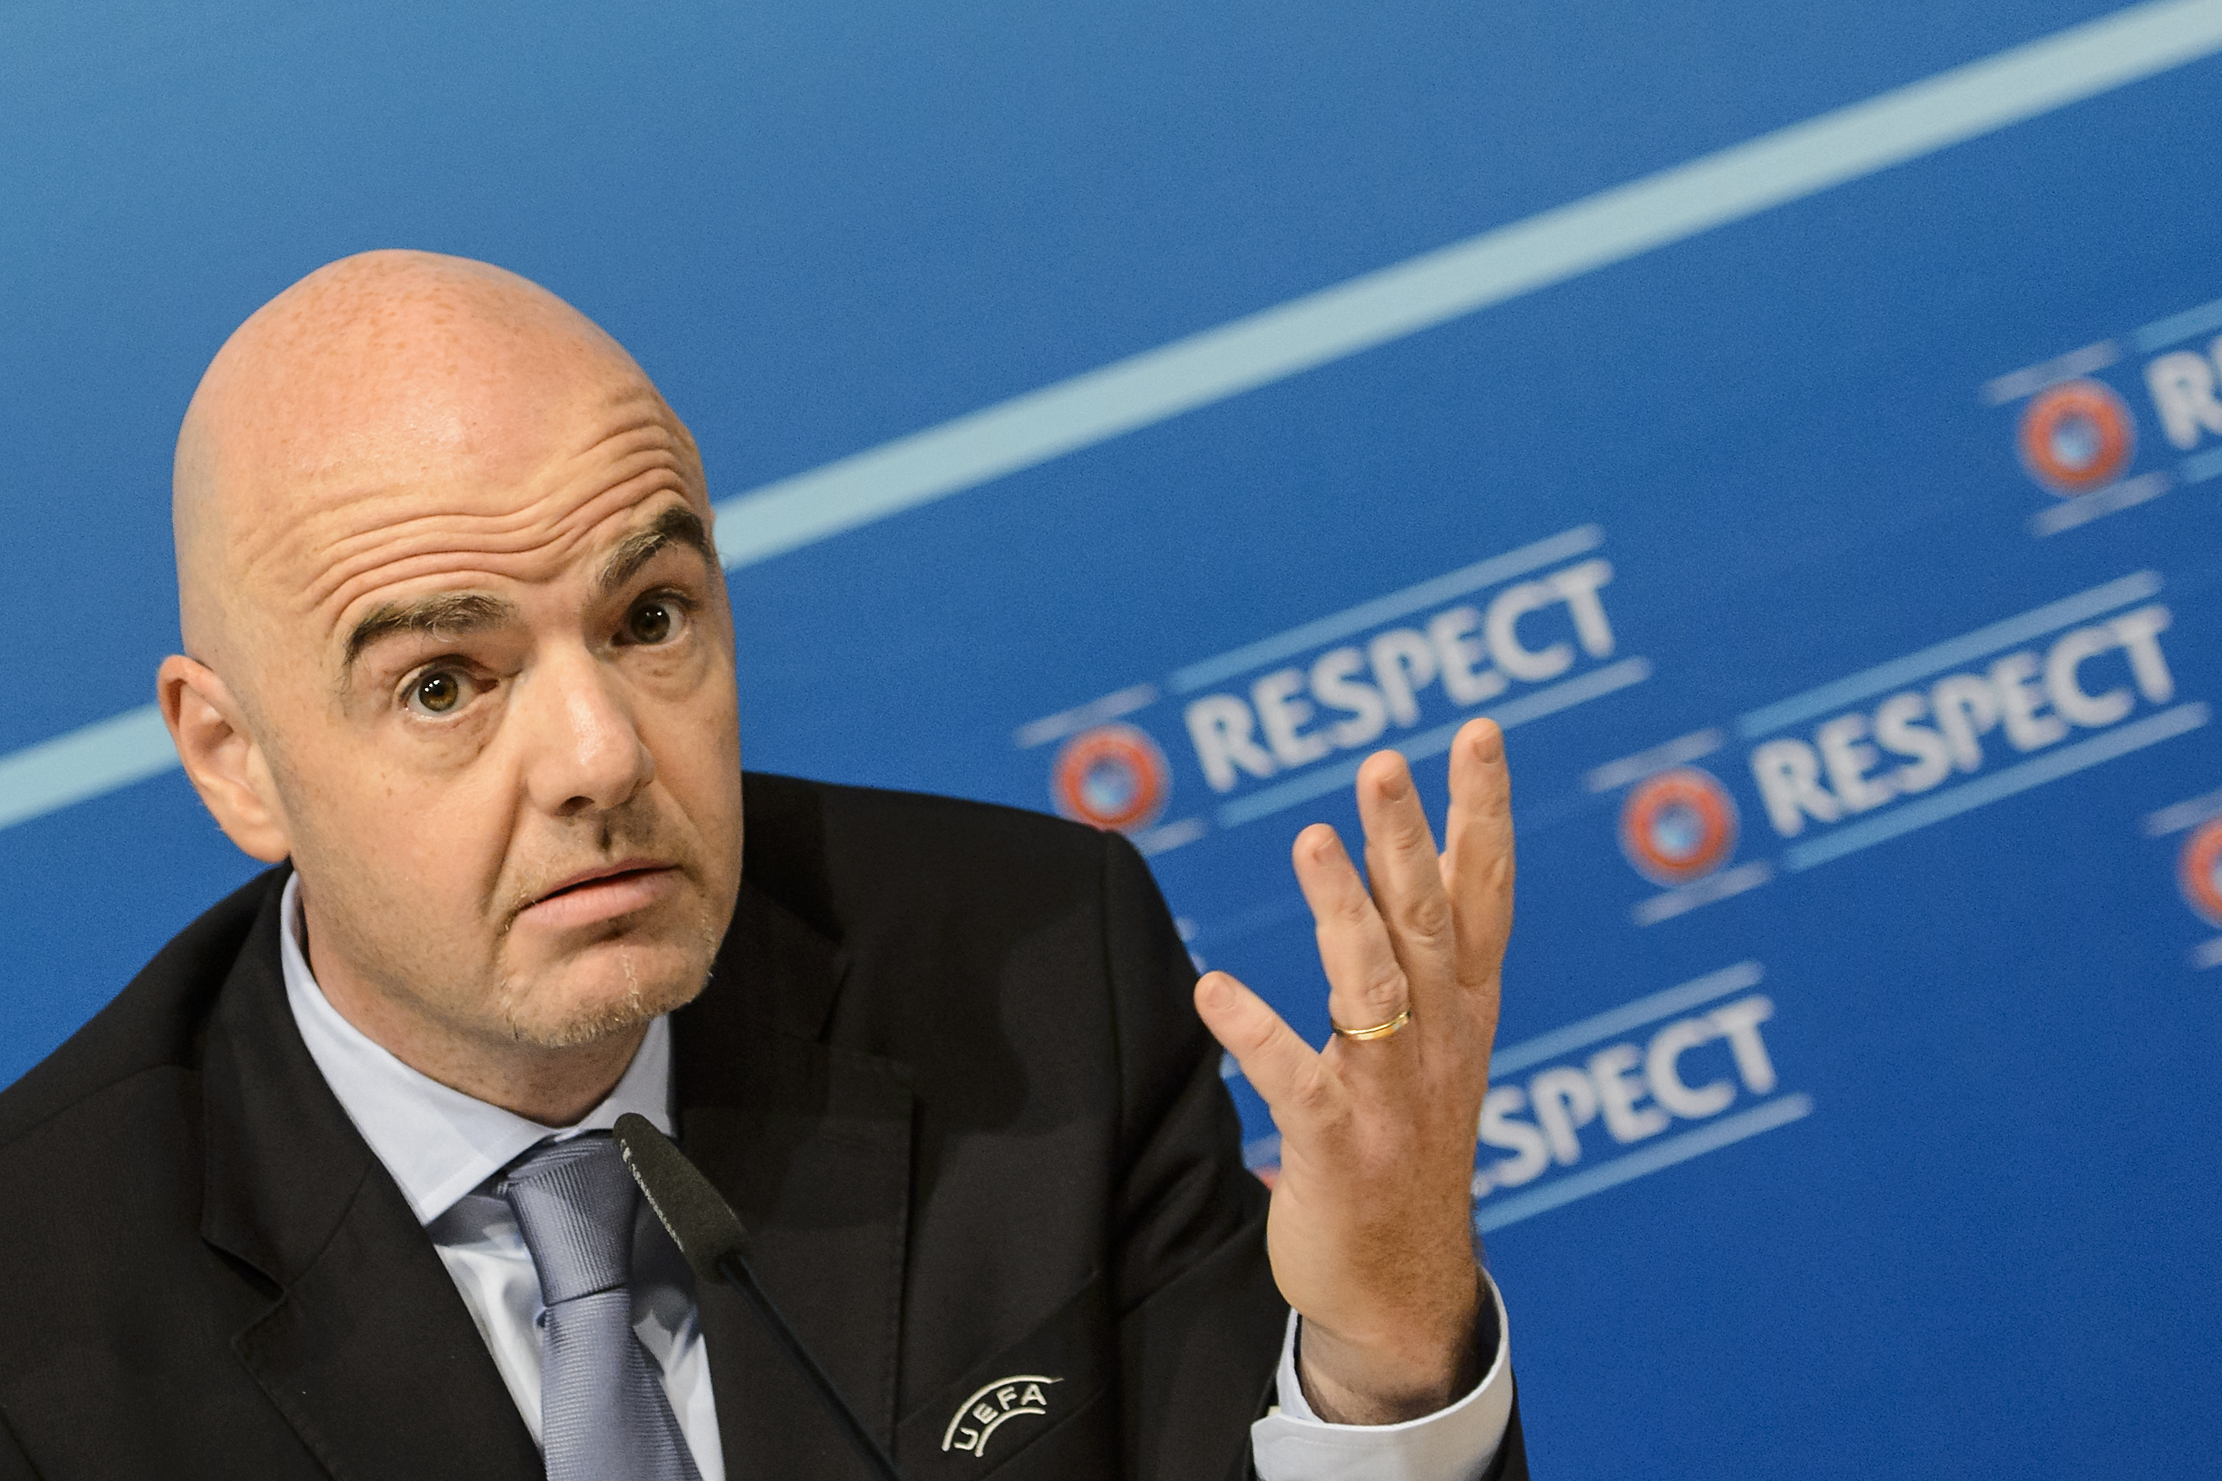 UEFA General Secretary Gianni Infantino gestures, during a press conference after the meeting of the UEFA Executive Committee and the meeting of UEFA's 54 member associations, at the UEFA Headquarters, in Nyon, Switzerland, Thursday, Oct. 15, 2015. All 54 European soccer nations decided Thursday to back Michel Platini while the UEFA president is still fighting to clear his name. (Jean-Christophe Bott, Keystone via AP)